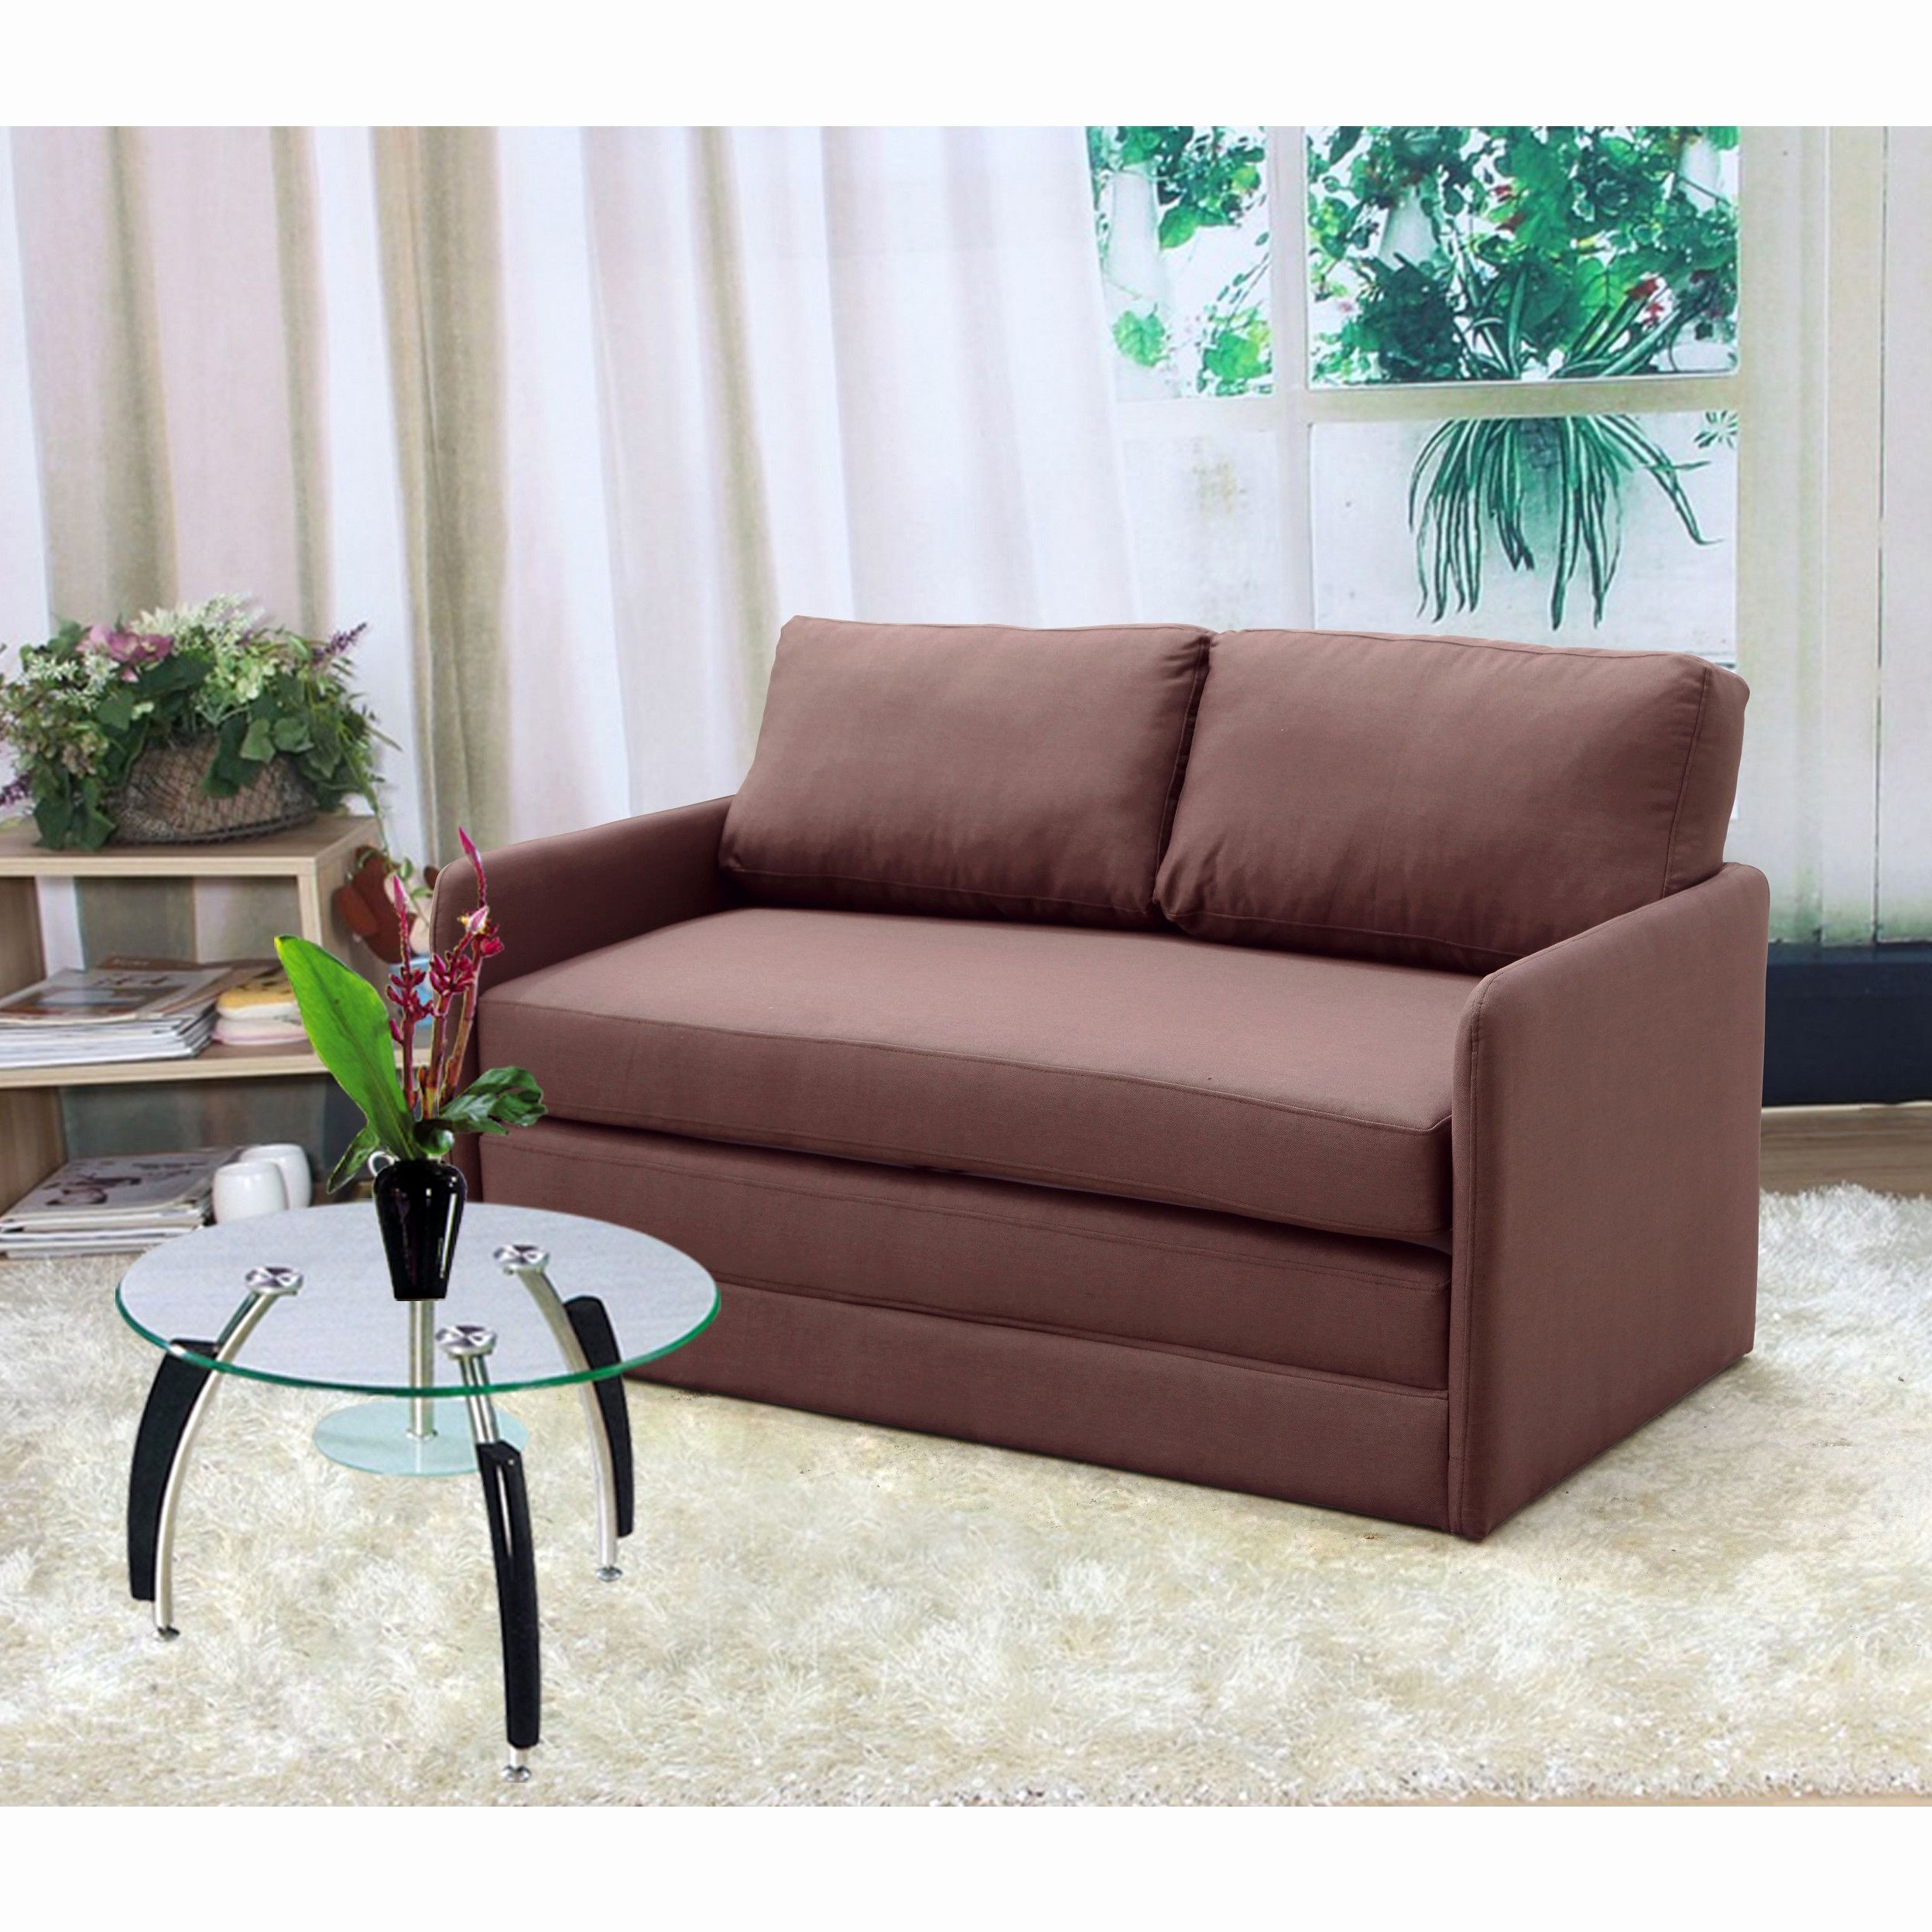 Inspirational Wayfair Sleeper Sofa Pics Loveseat Sofa Bed Tags Wayfair Sofa  Sleeper Sleeper Sofa Leather